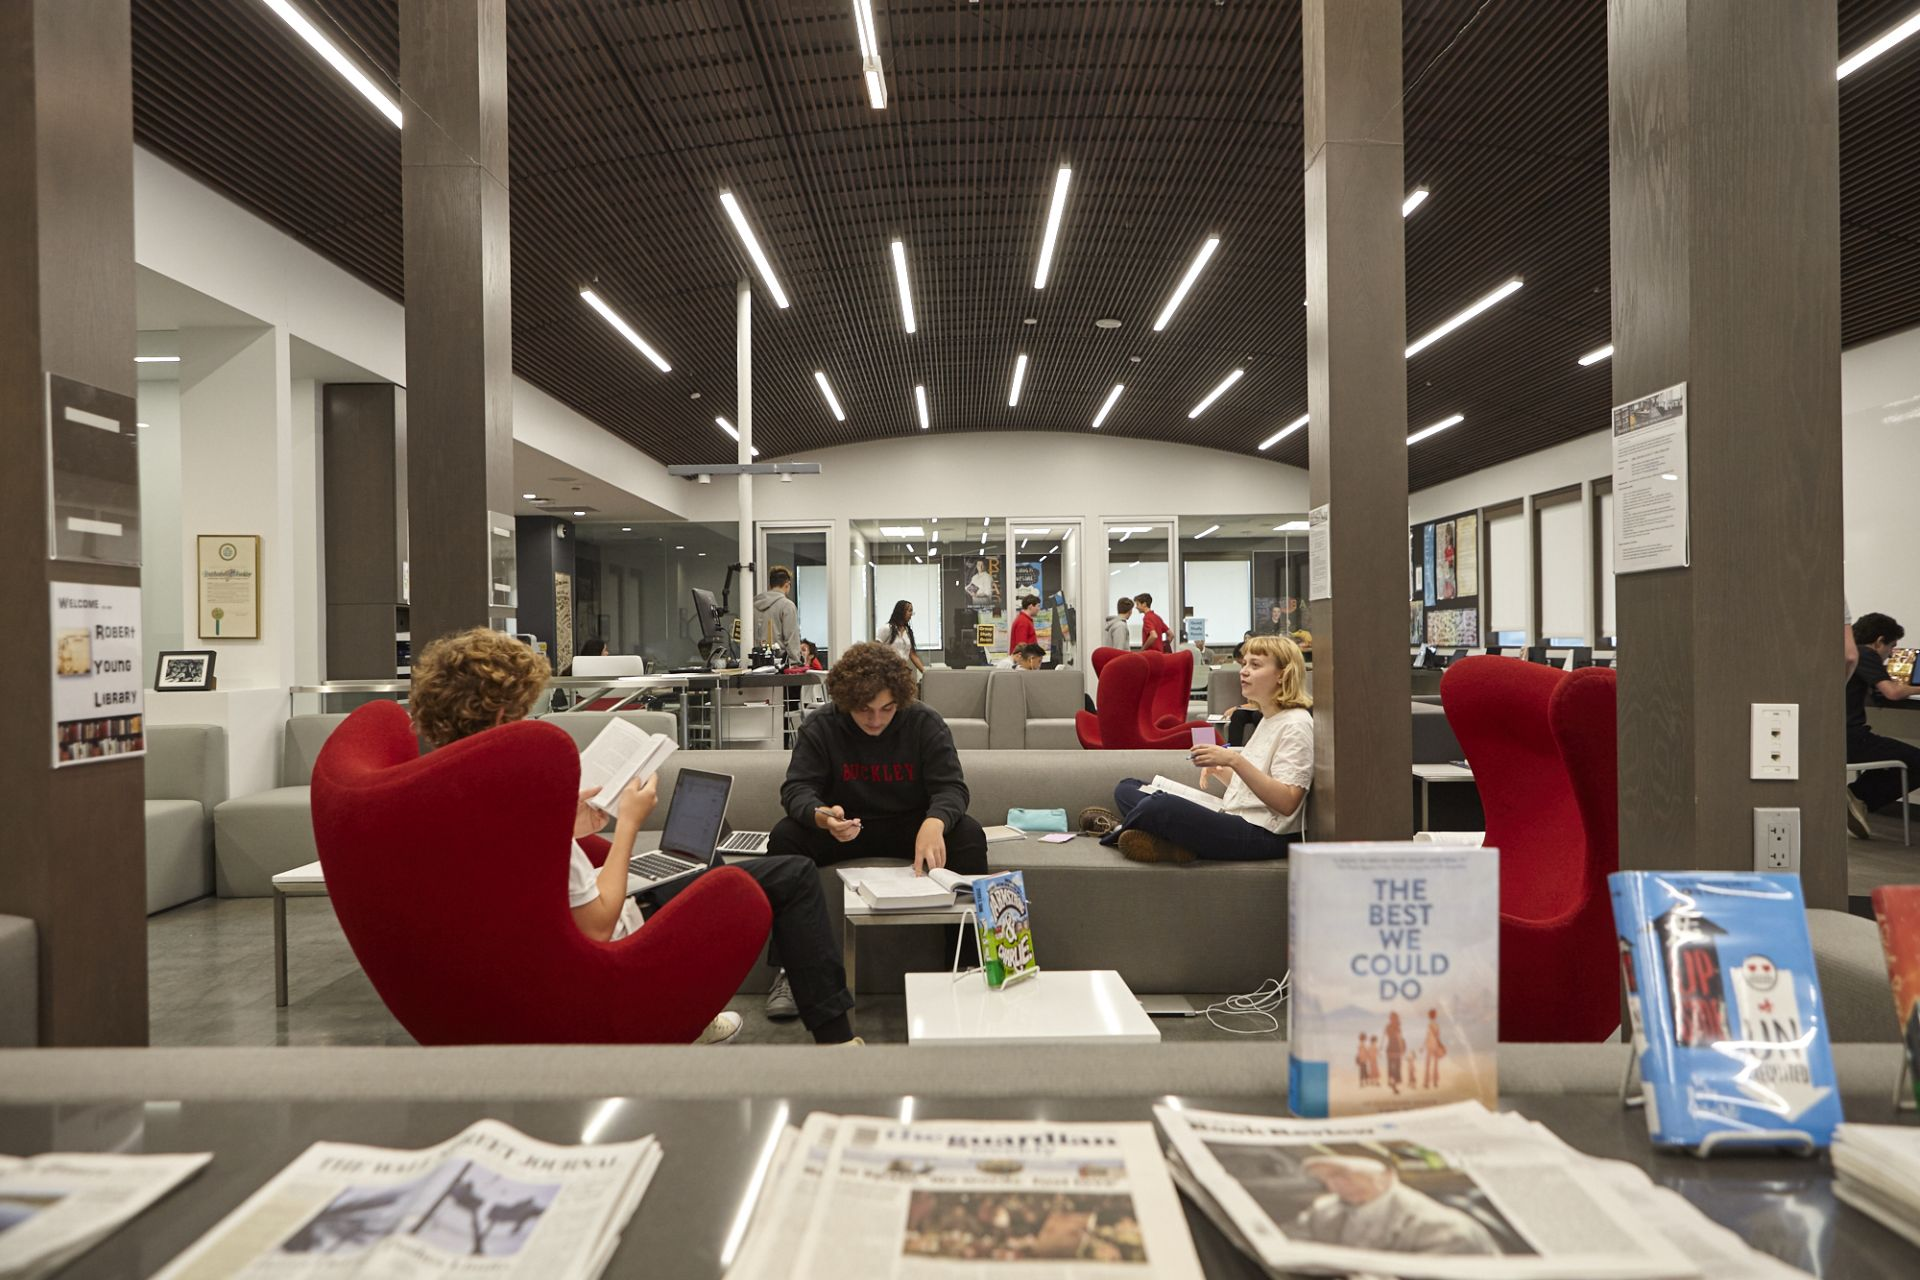 The Robert Young Library features both group and individual study spaces.